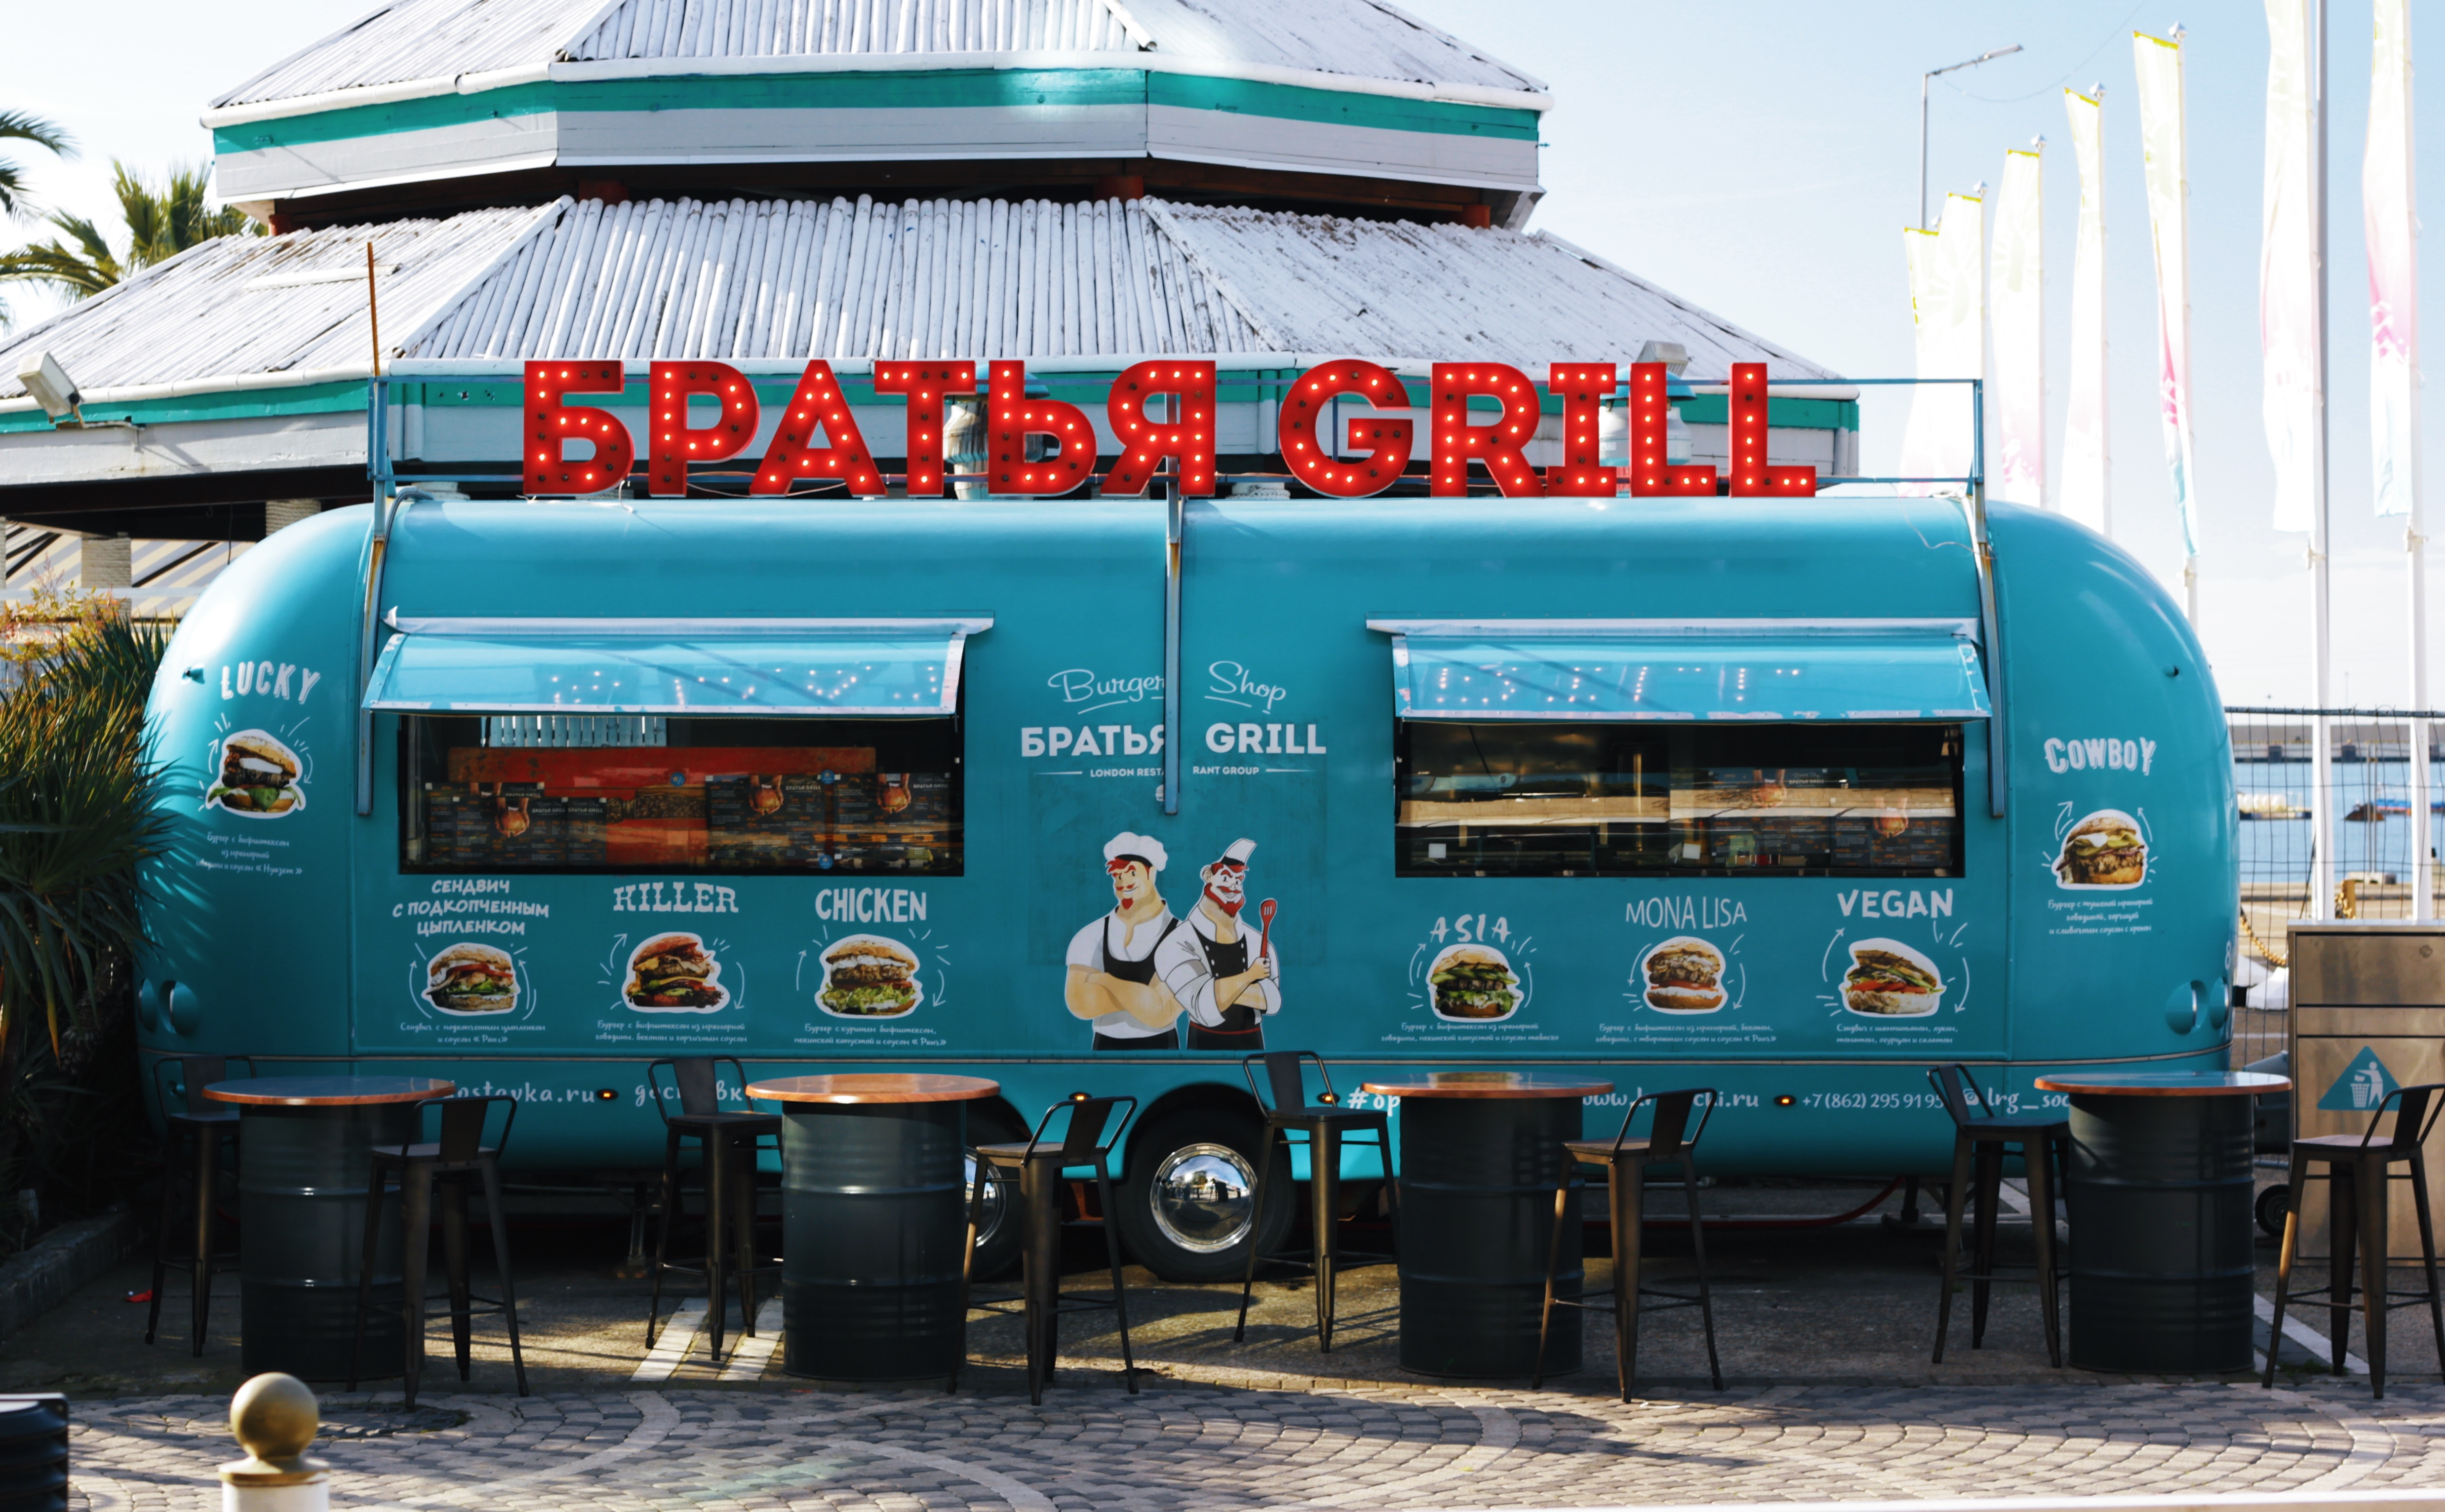 Green barbecue grill food stall photo